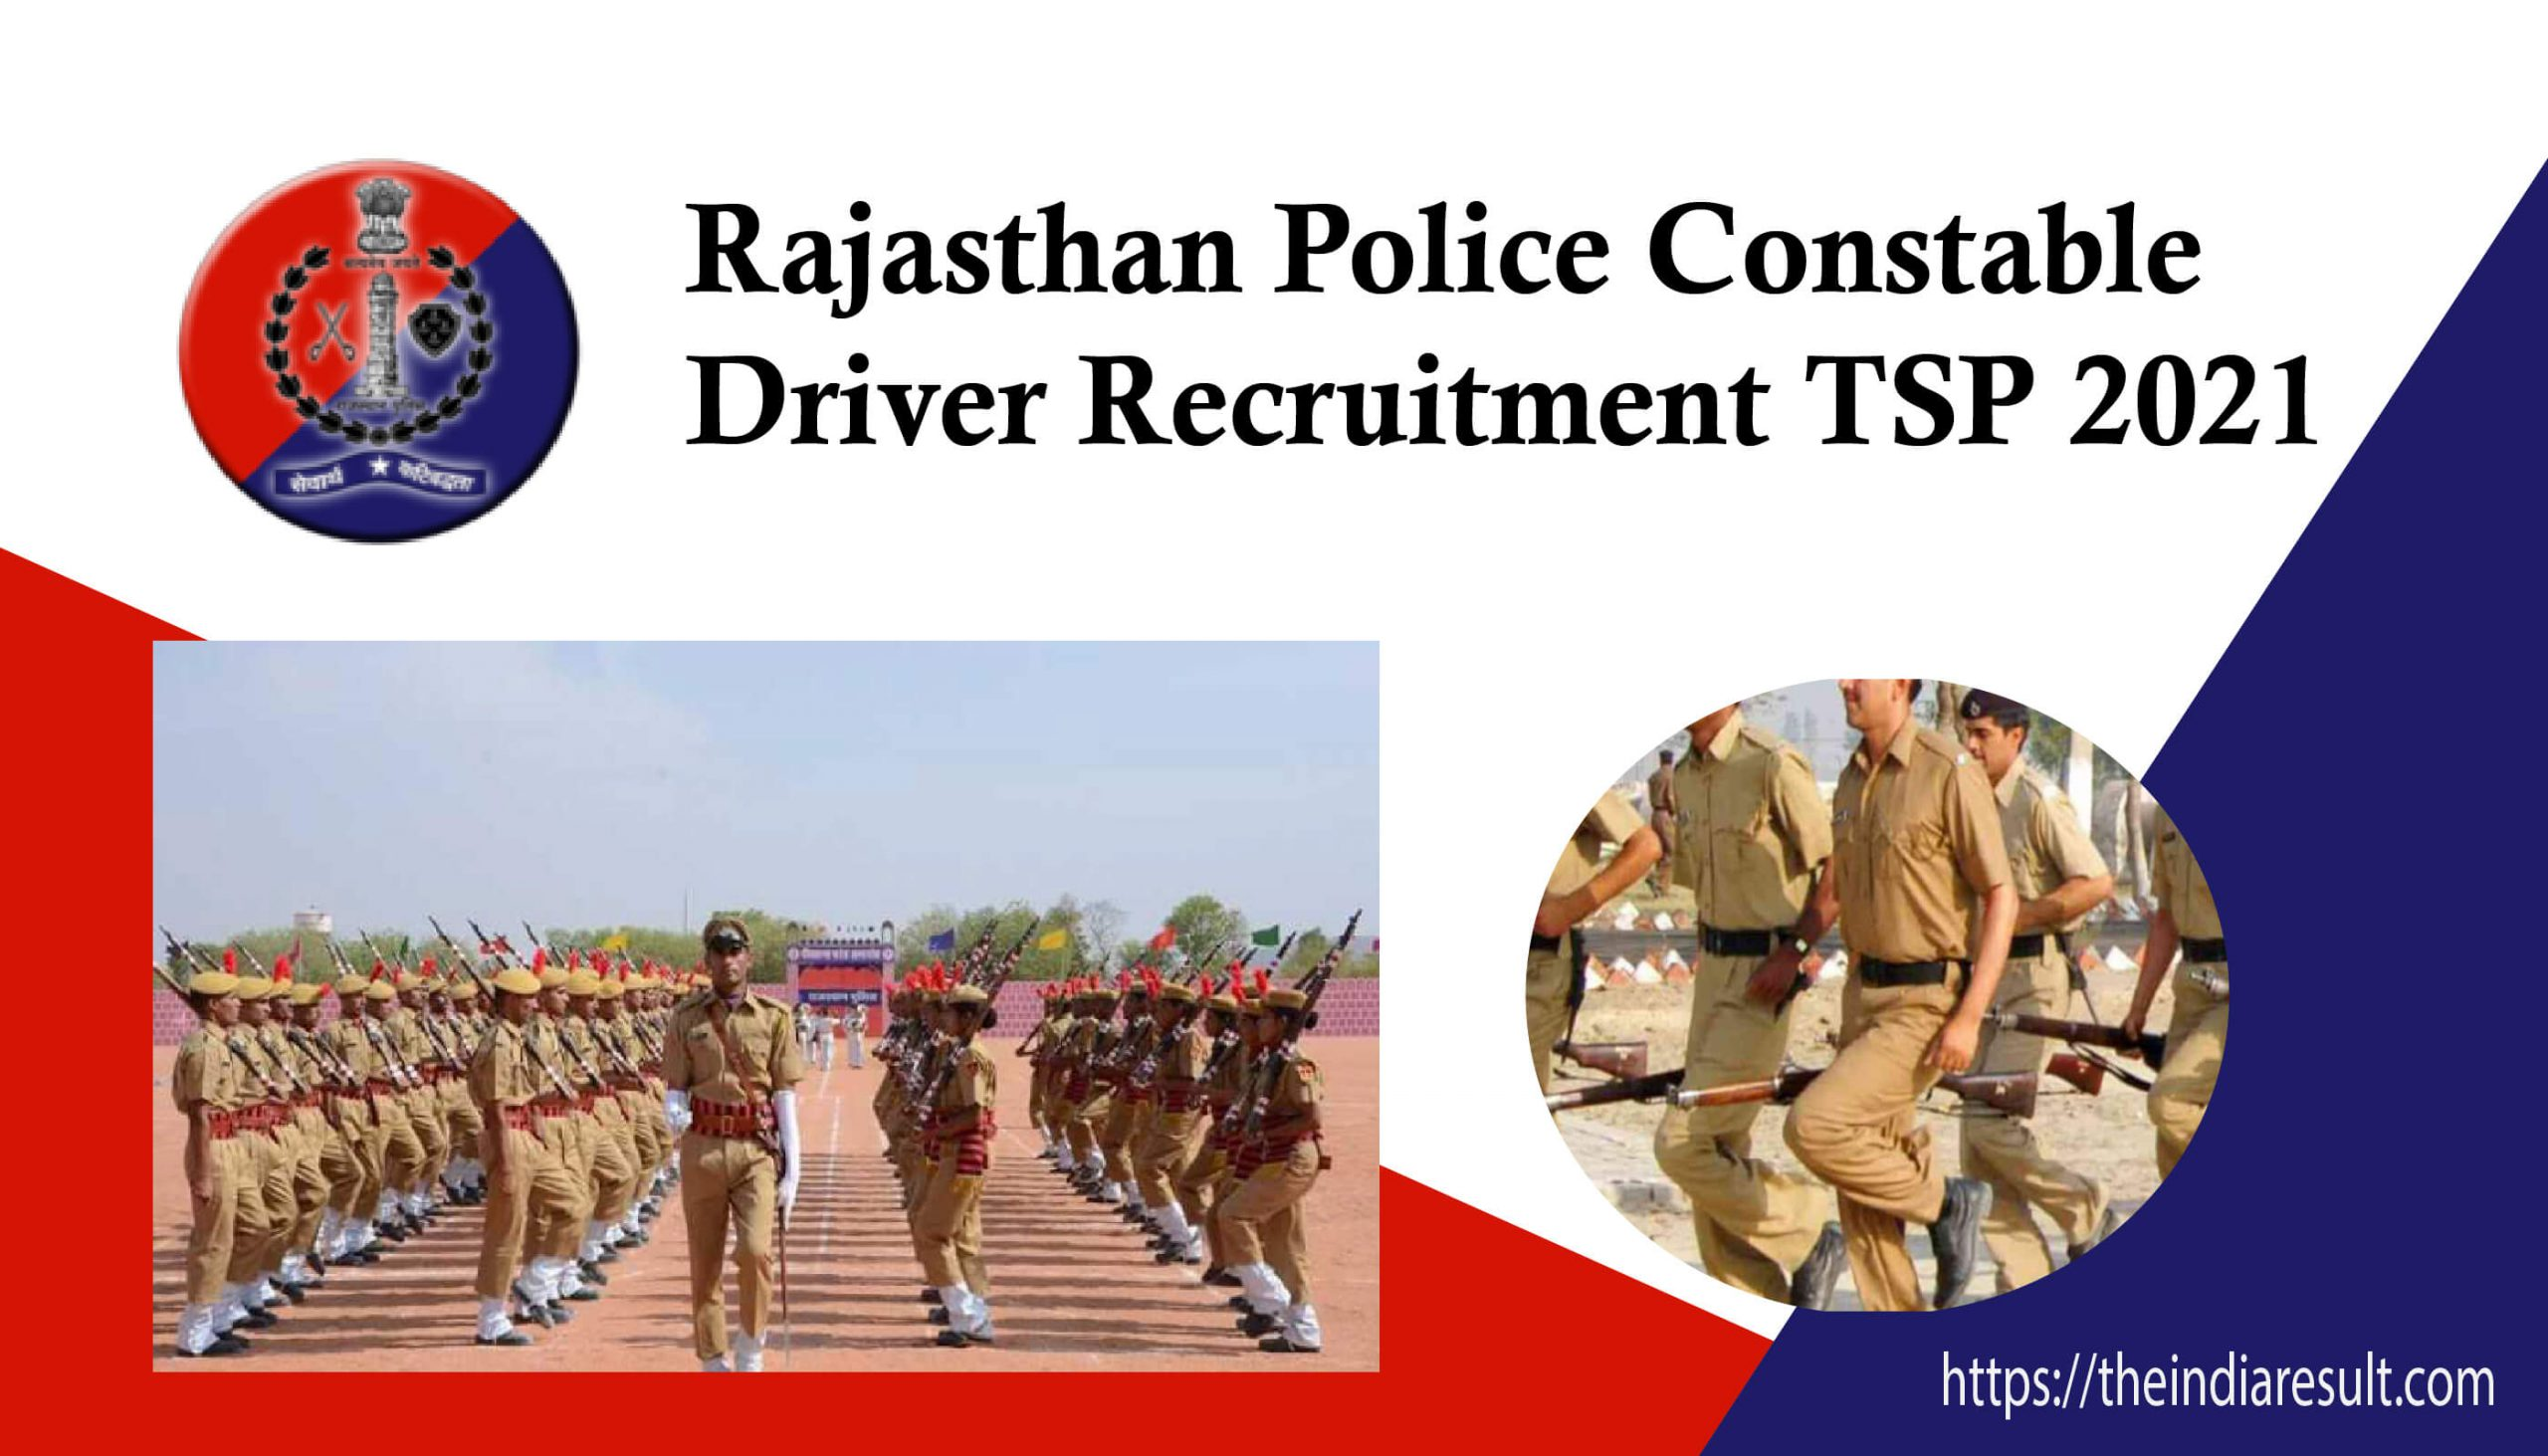 Rajasthan Police Constable Driver Recruitment TSP 2021